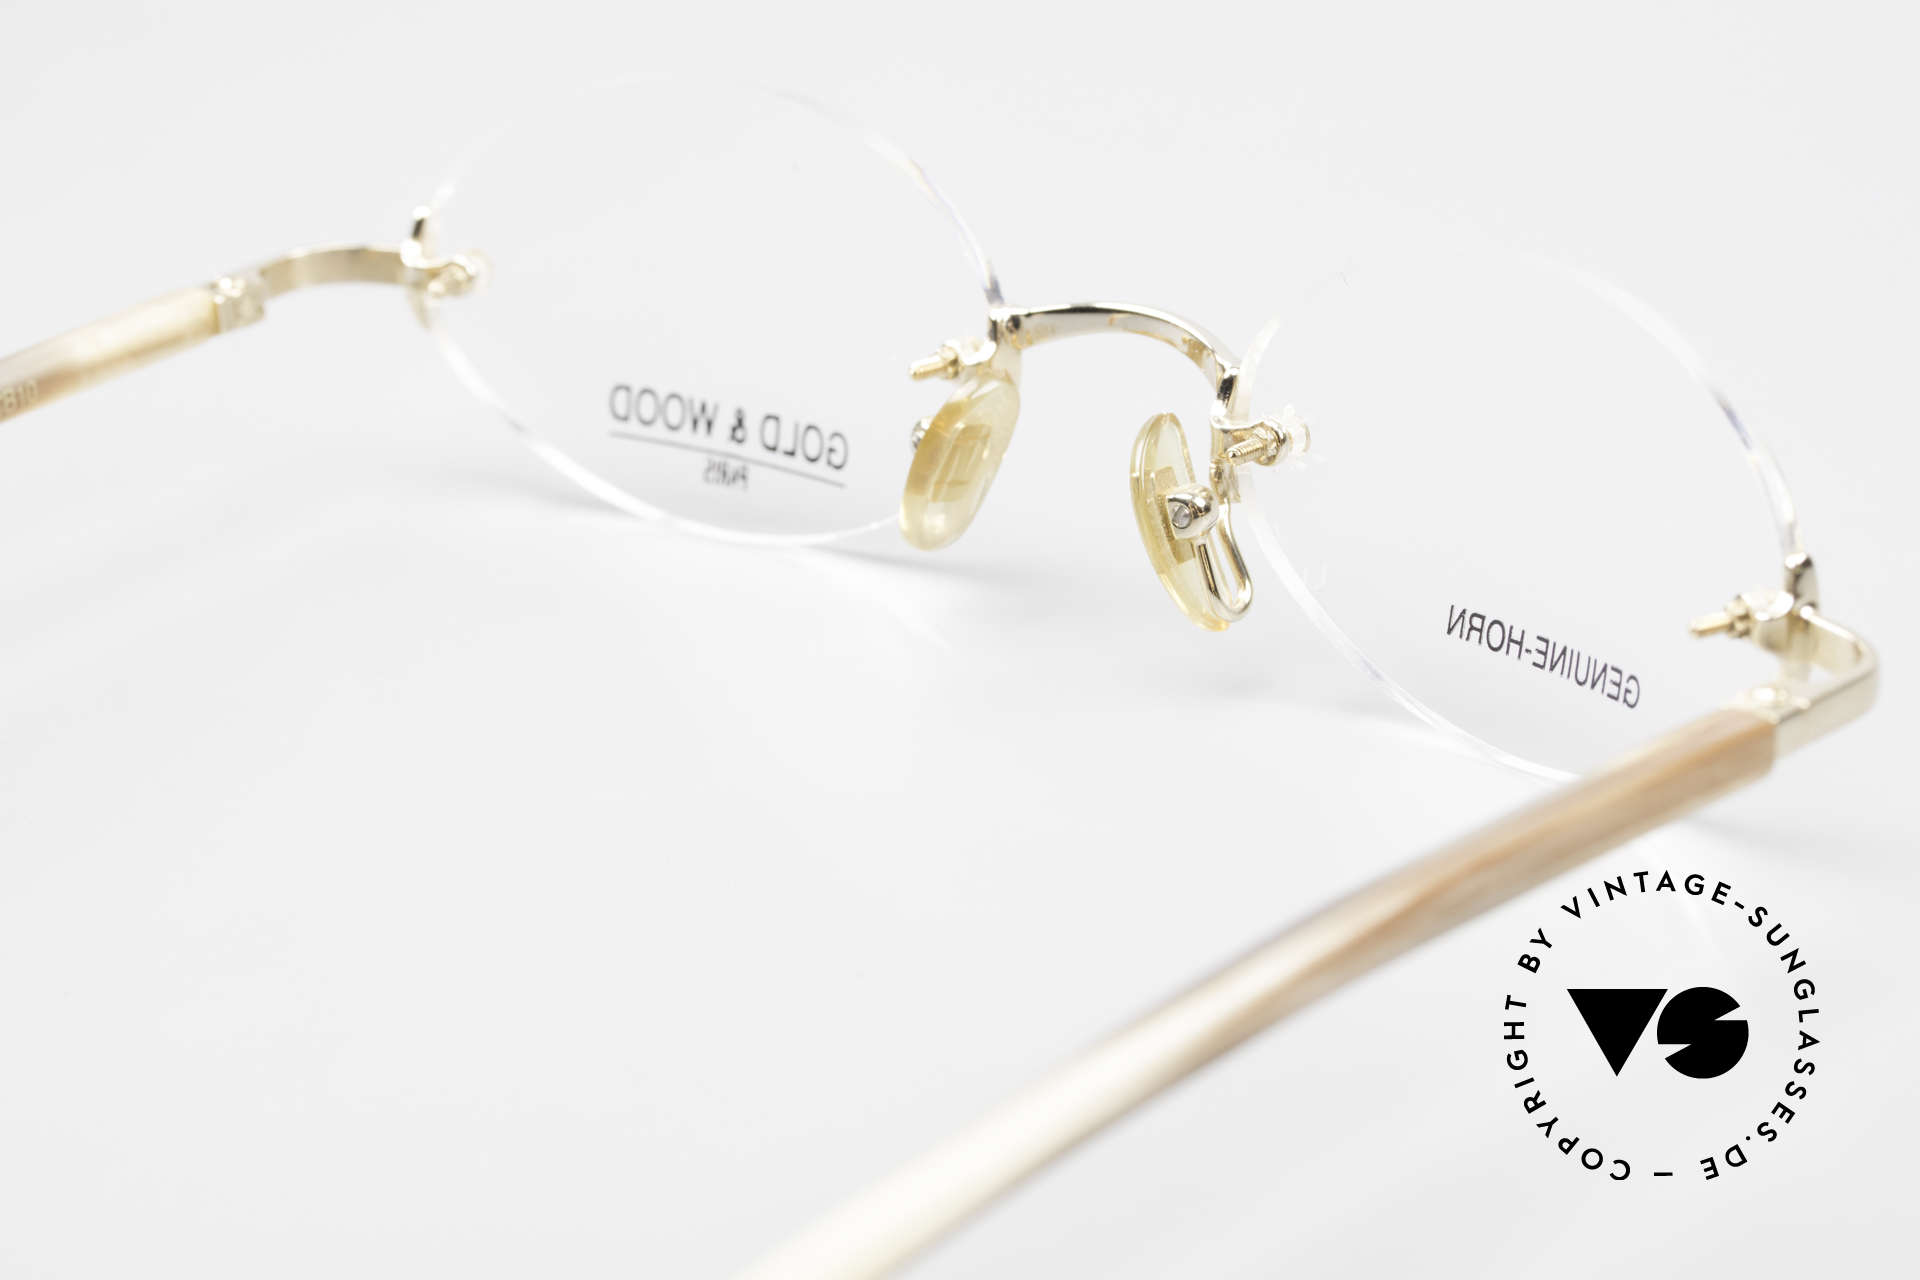 Gold & Wood 331 Rimless Genuine Horn Glasses, Size: medium, Made for Men and Women